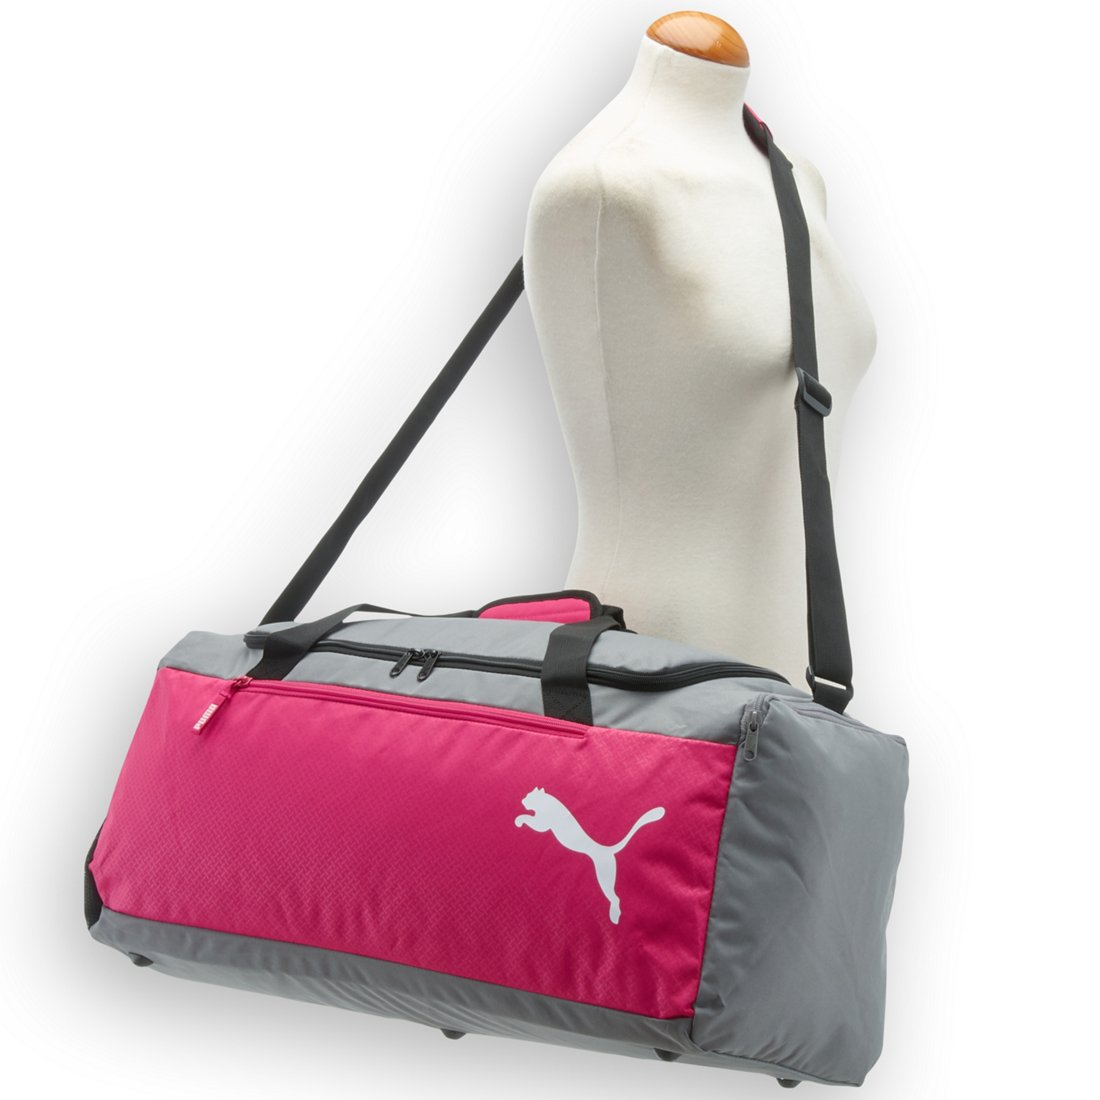 fb058a58664ff Puma Fundamentals Sports Bag M Sporttasche 60 cm - beetroot purple-steel  gray. Previous